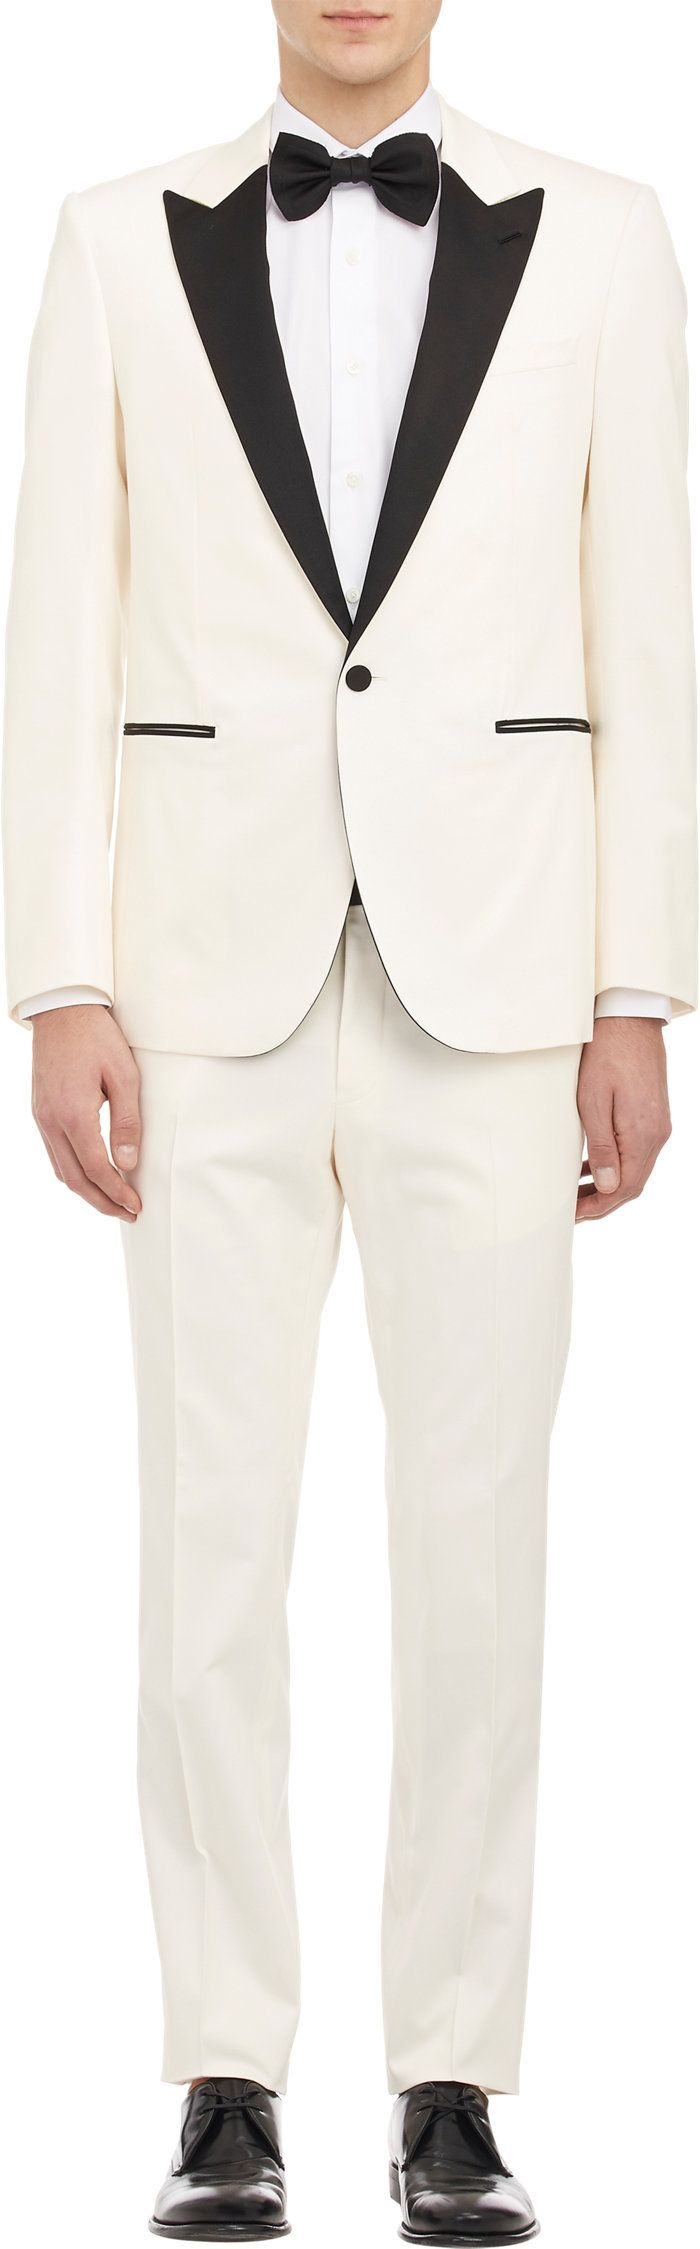 6 White Tuxedos + Jackets for Beach Perfect Wedding